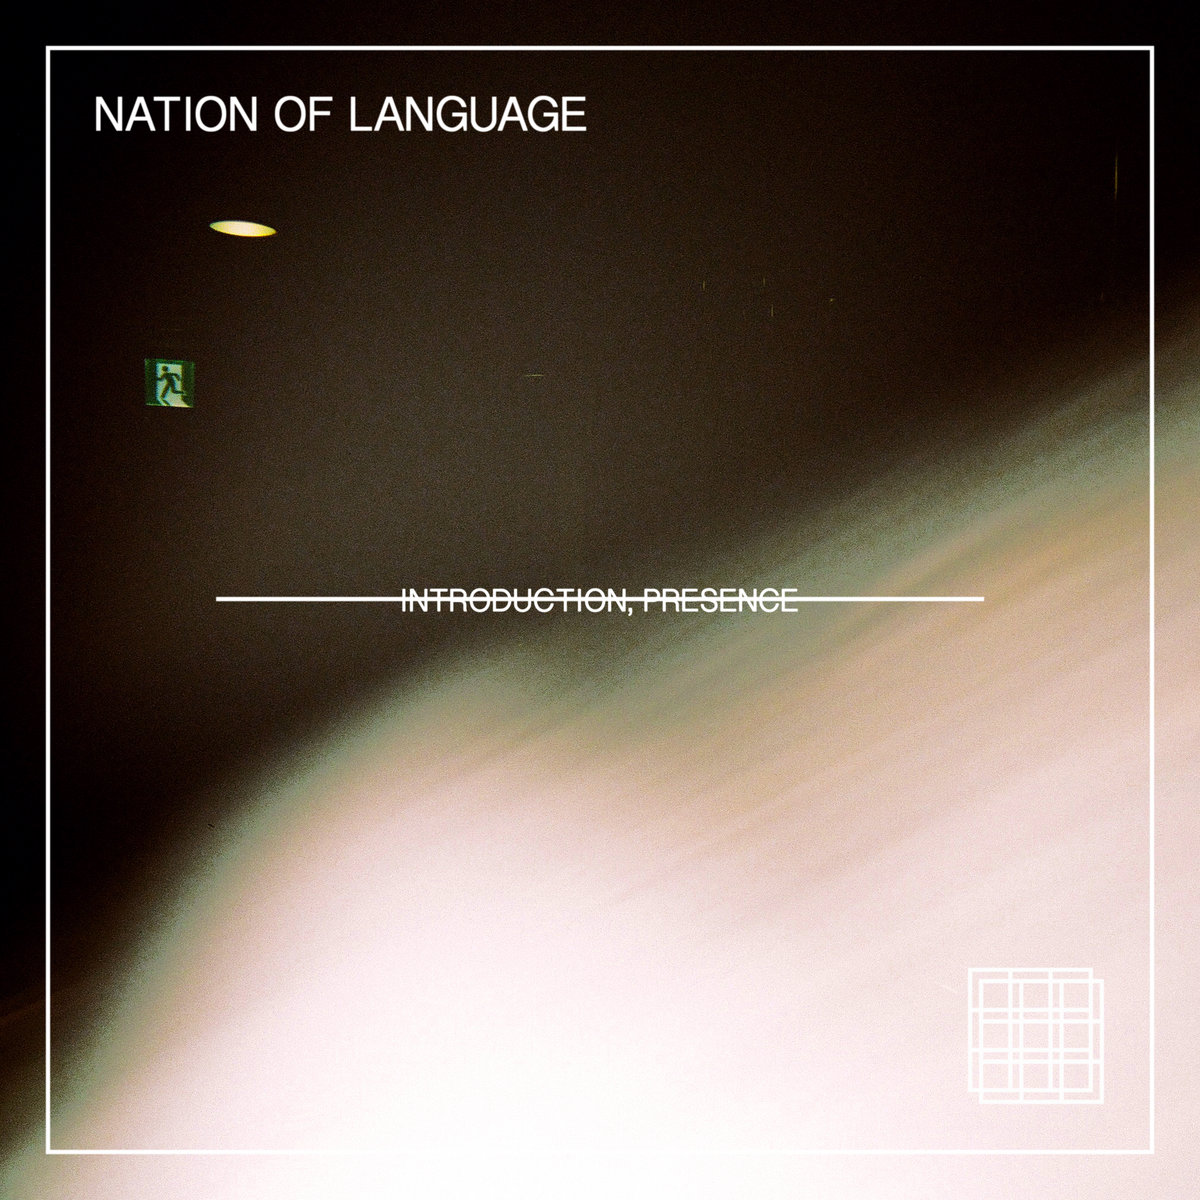 nation of language introduction presence review